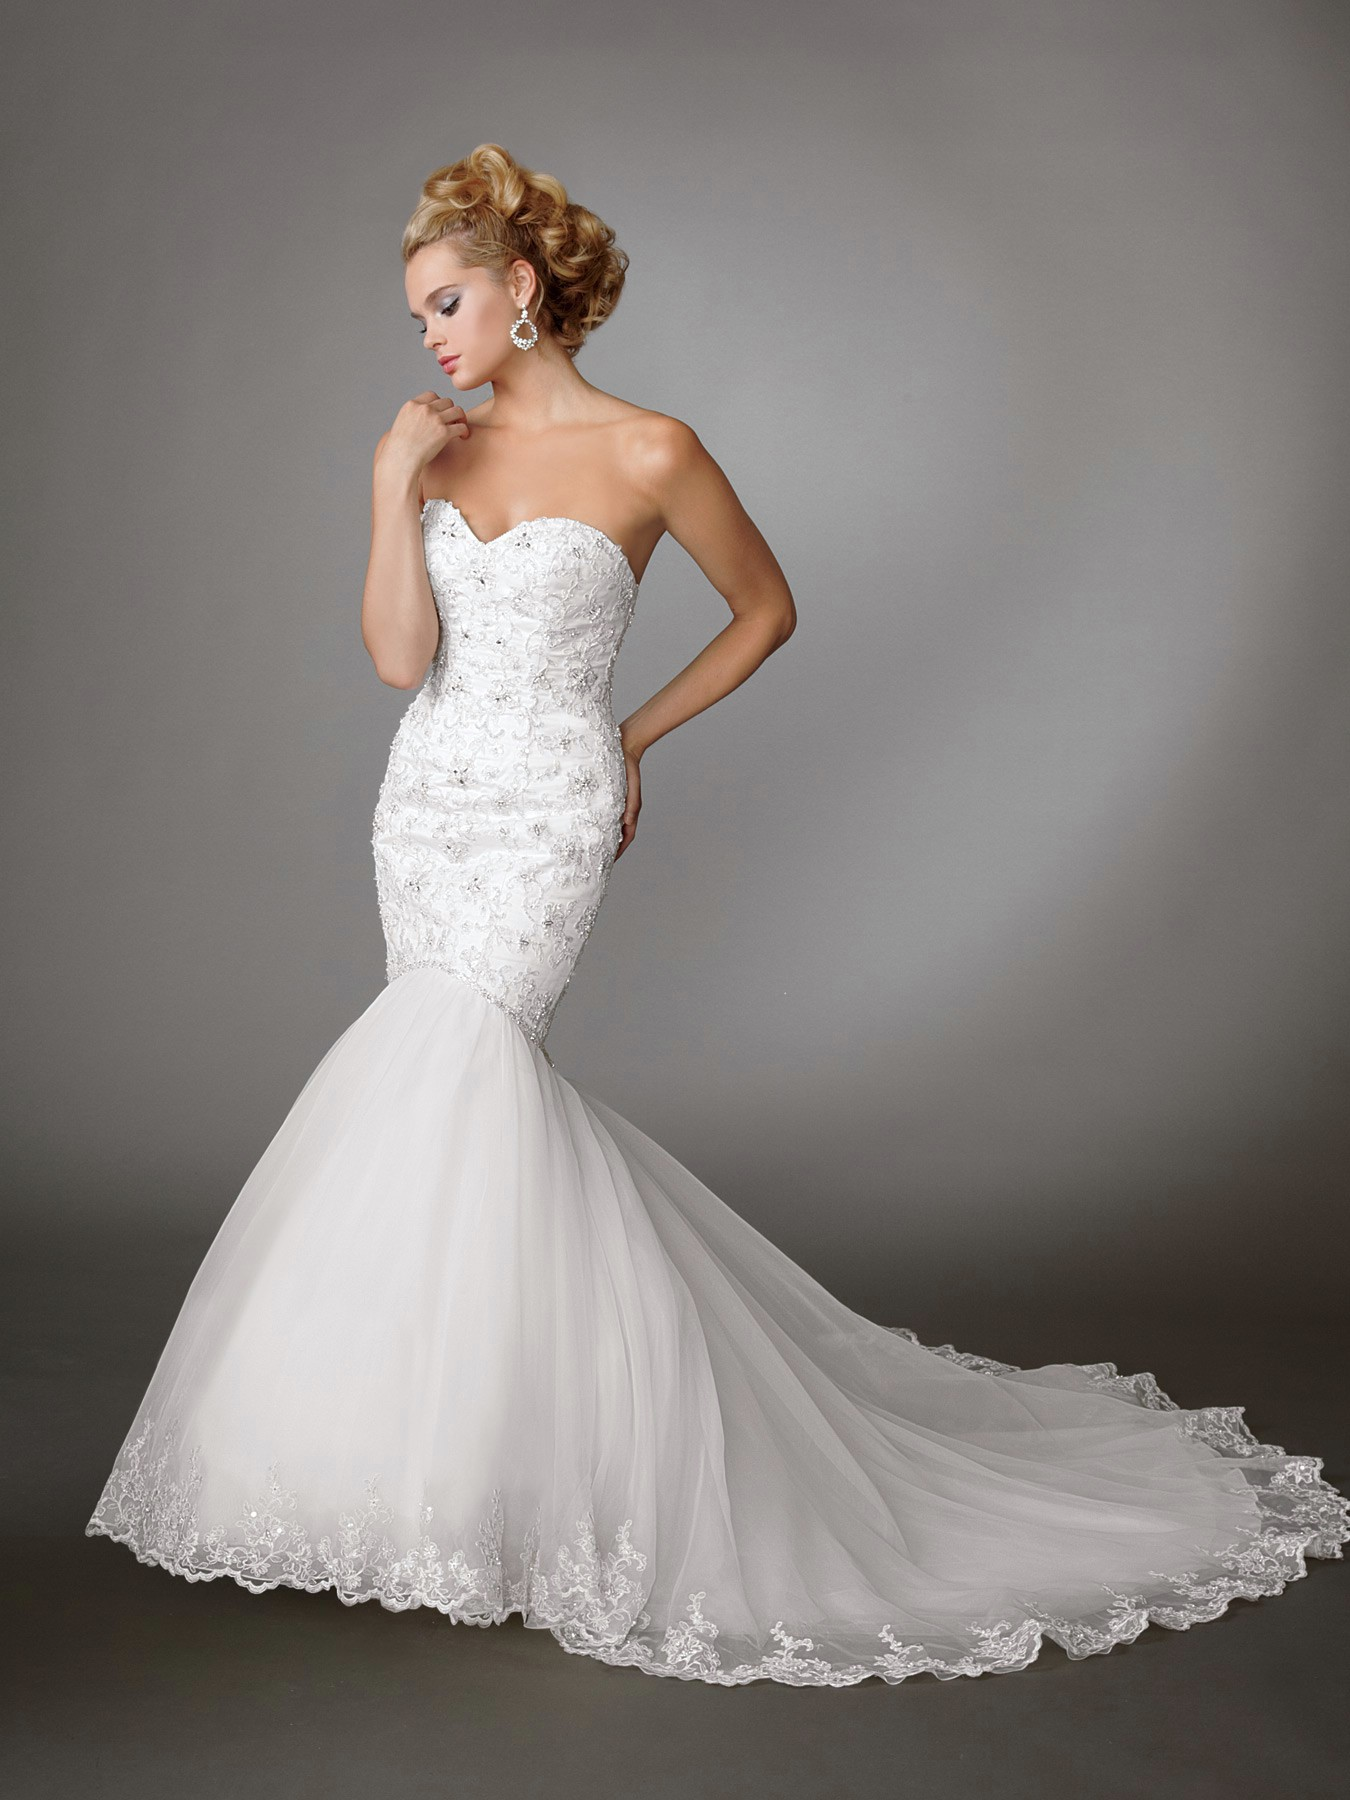 Mermaid wedding dresses an elegant choice for brides for Heart shaped mermaid wedding dresses